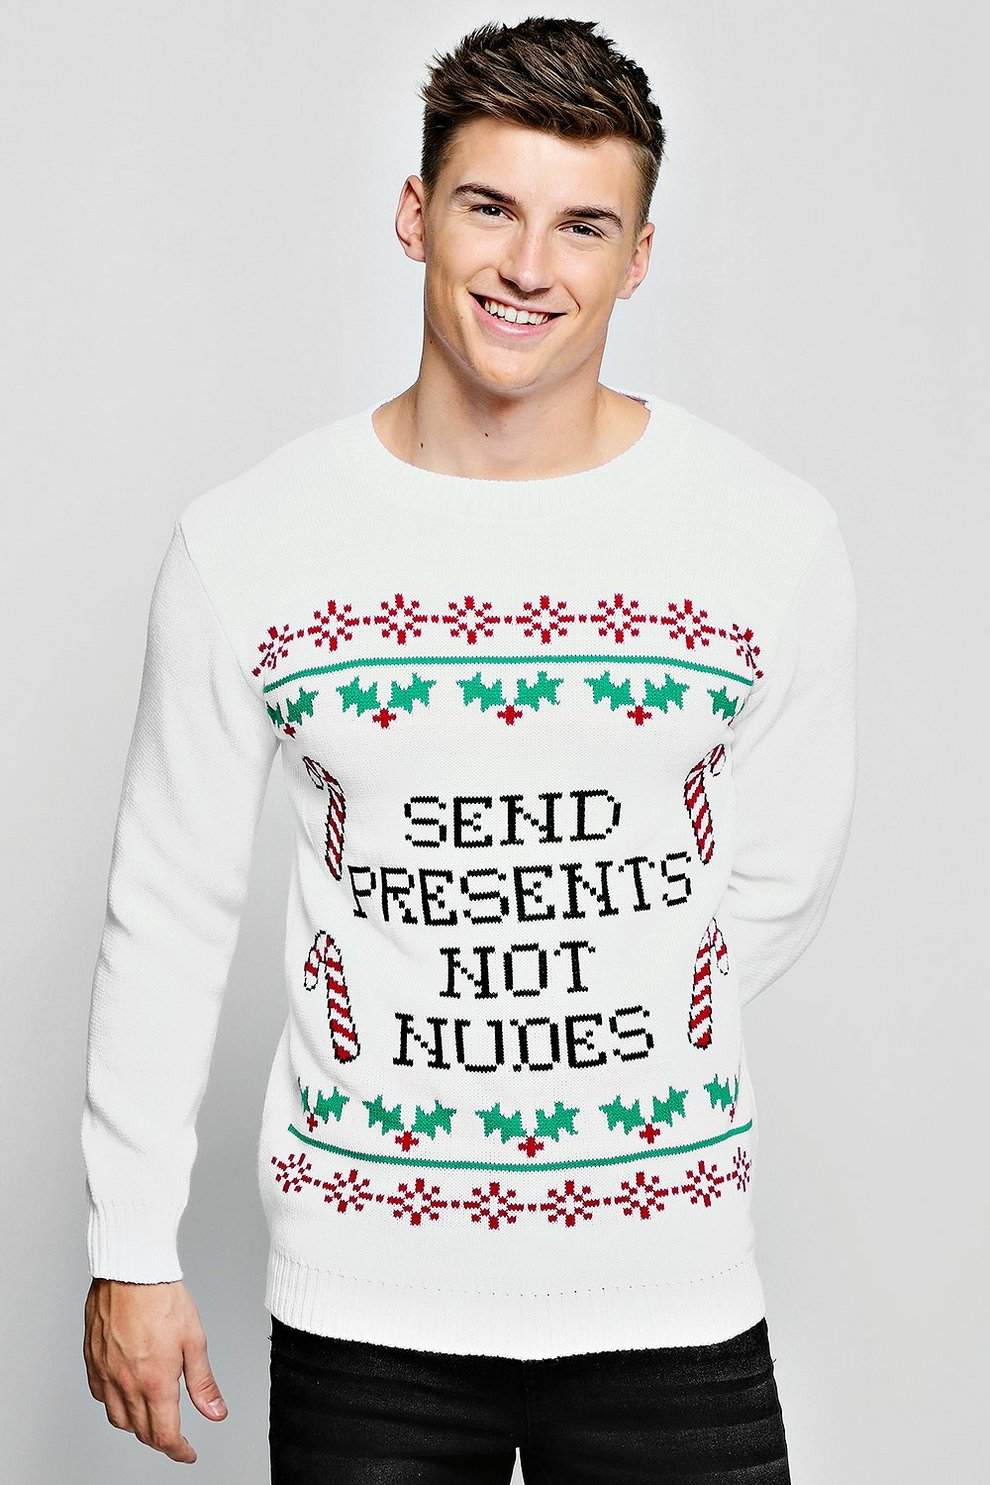 dbe58de329935 Mens White Presents/Pictures Knitted Christmas Jumper